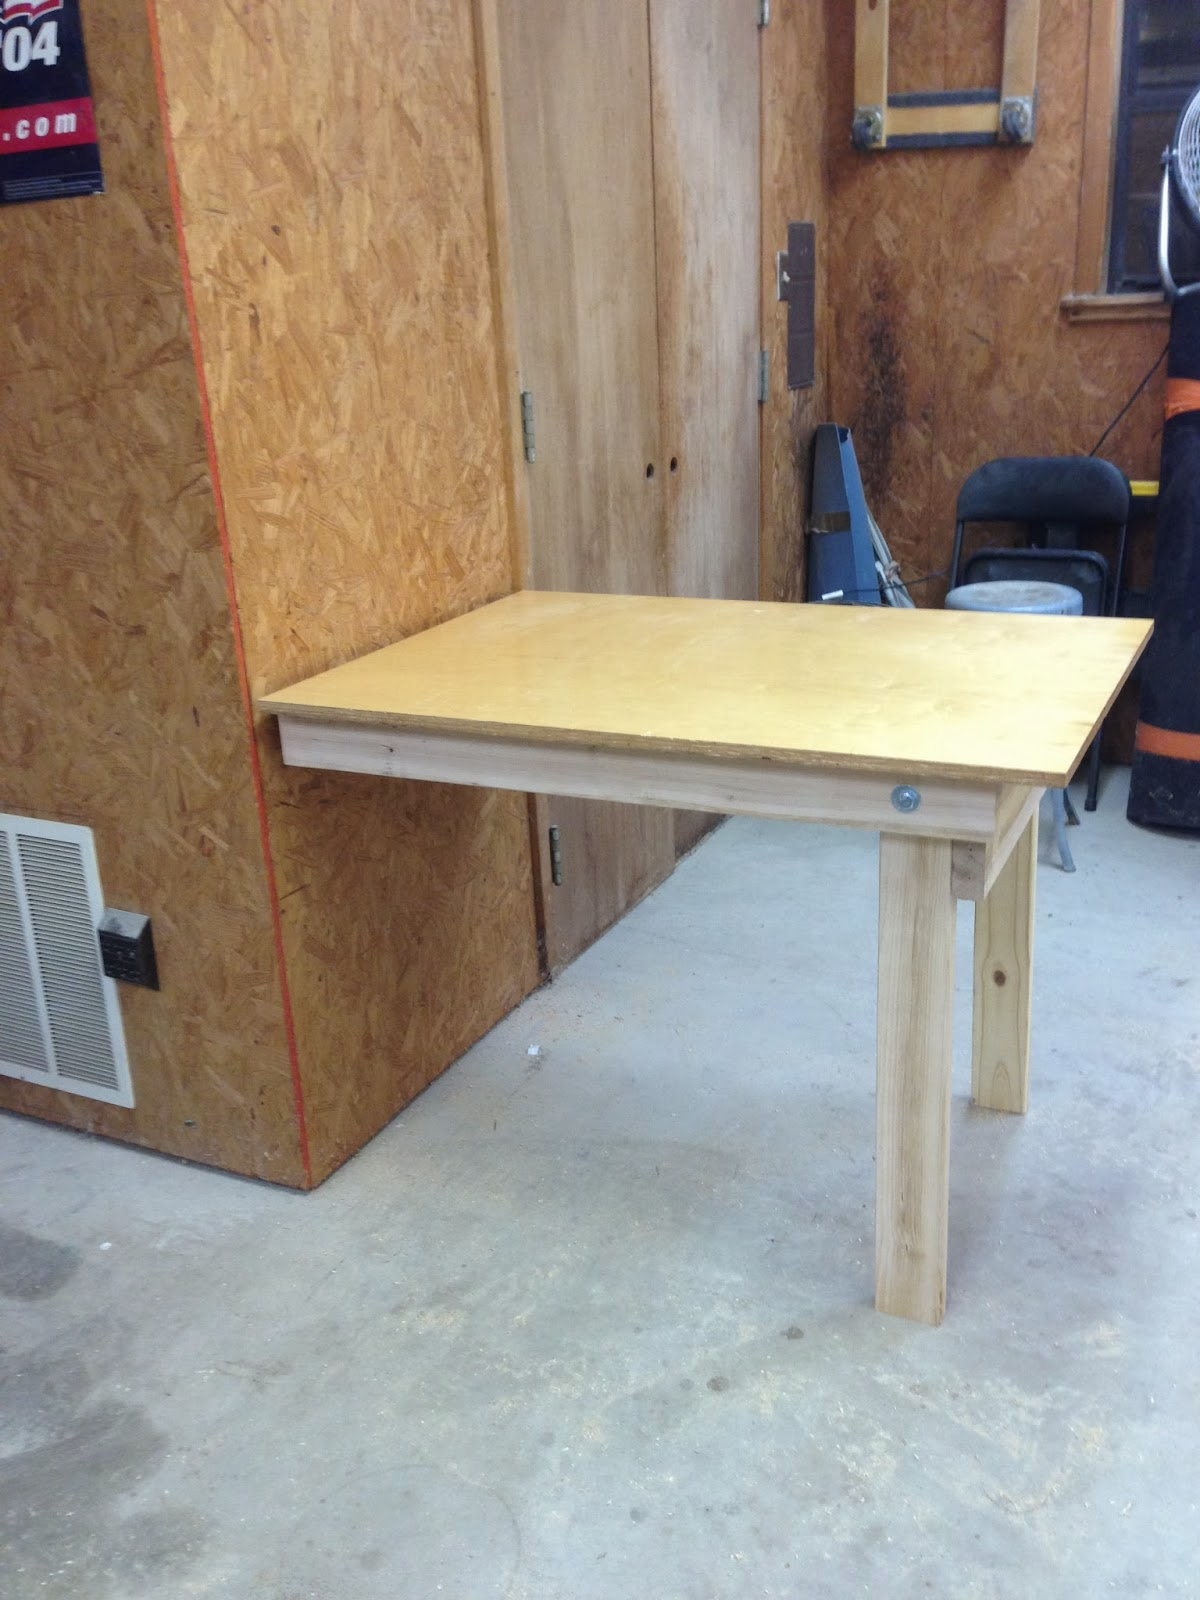 Wilker do 39 s diy fold down workbench for Diy fold down desk